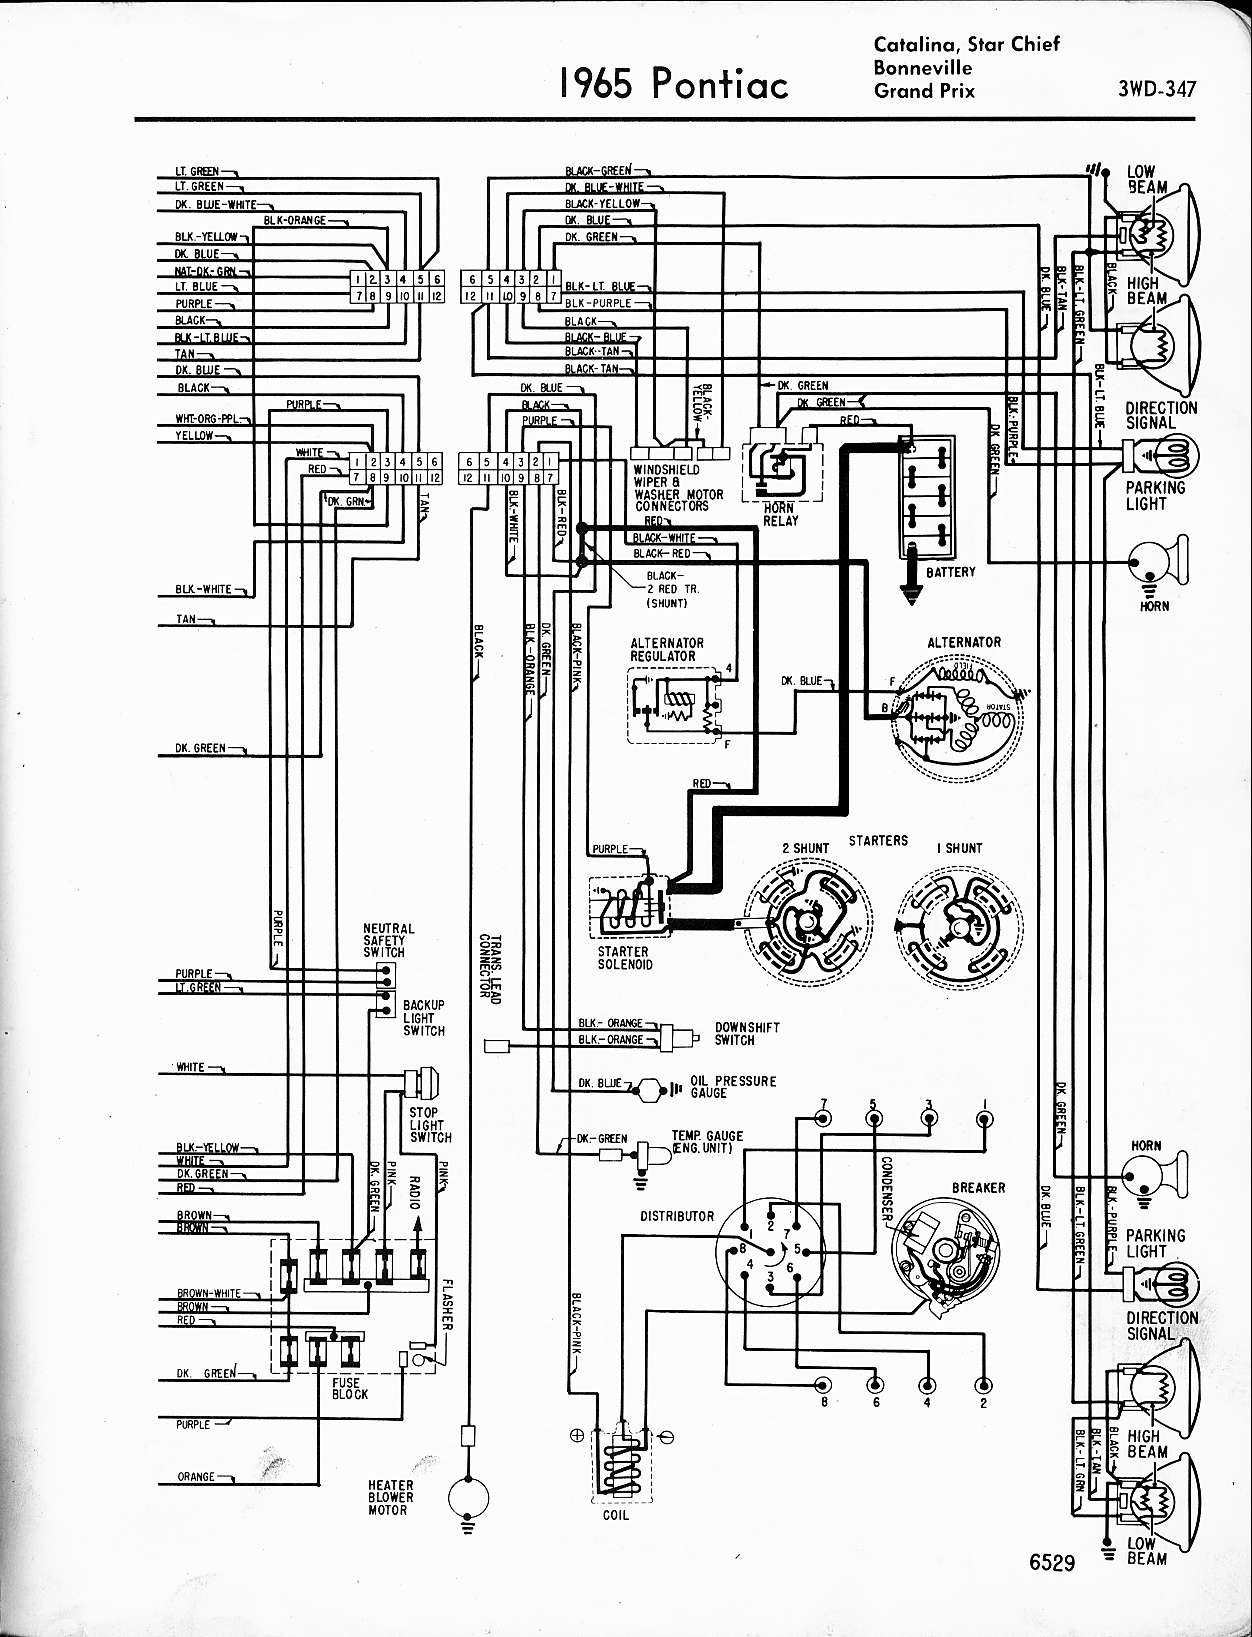 MWire5765 347 wallace racing wiring diagrams 2002 pontiac bonneville wiring diagram at crackthecode.co